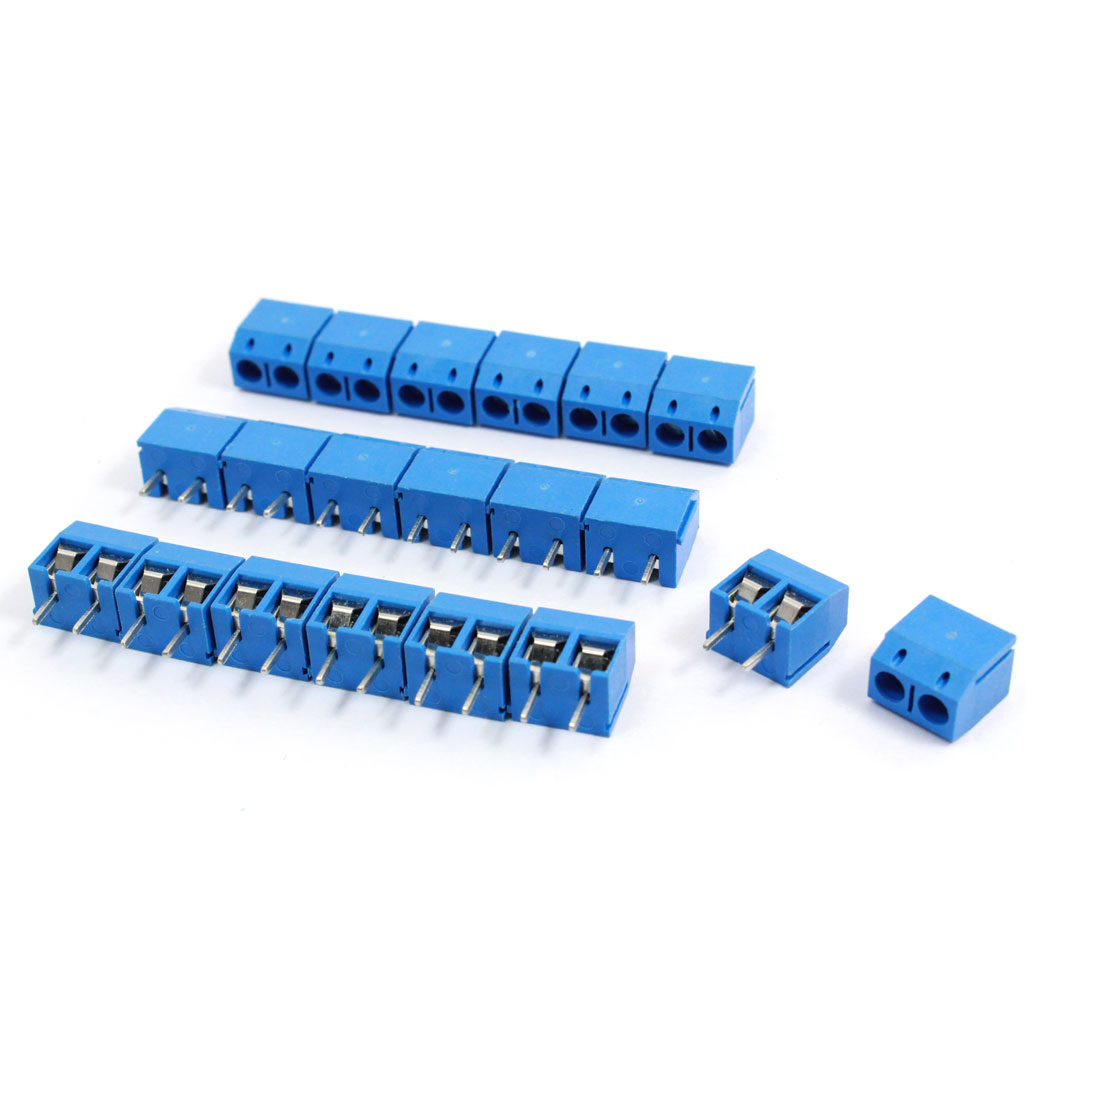 20 Pcs 301-2P 5mm Pitch AC 300V 10A Blue Screw Terminal Blocks Connector